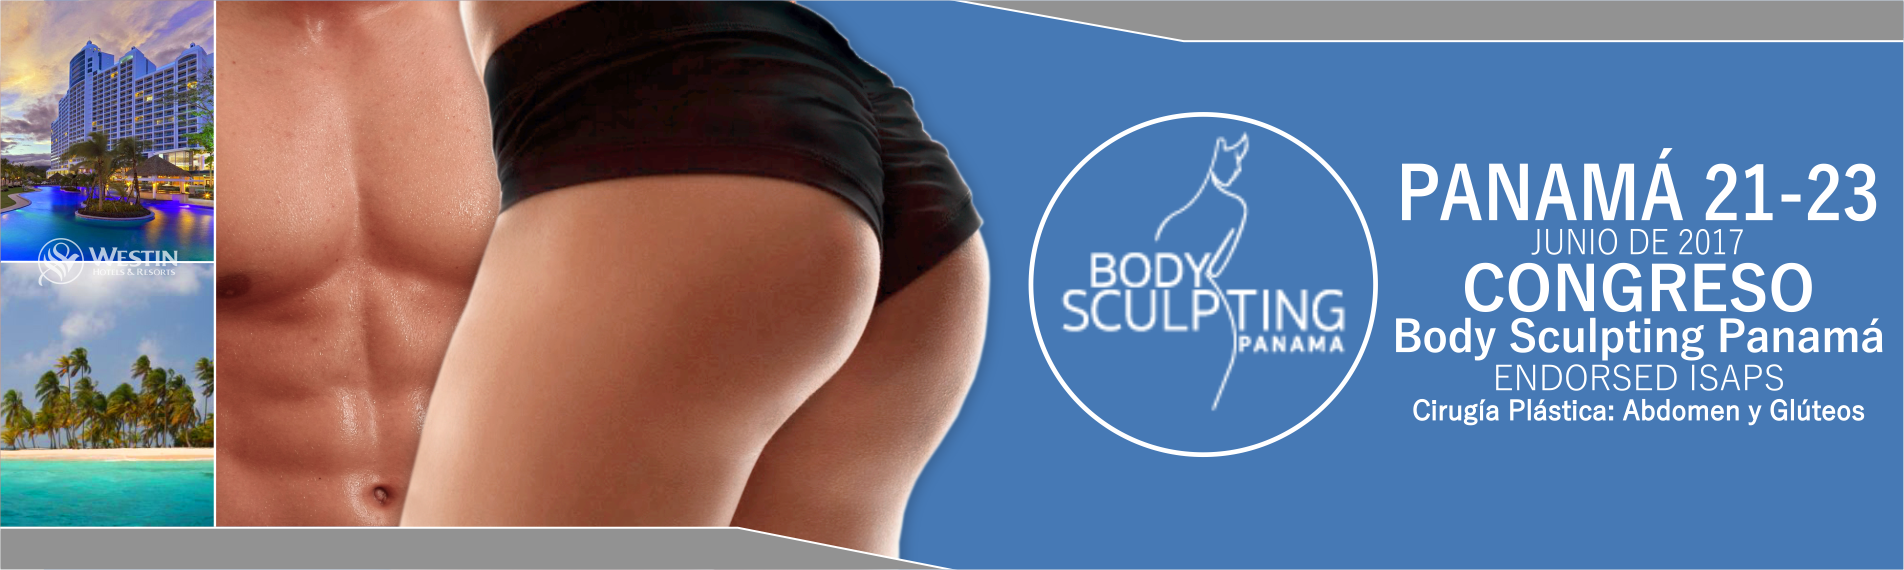 Banner-T1-M1-Pag-Body-Sculpting